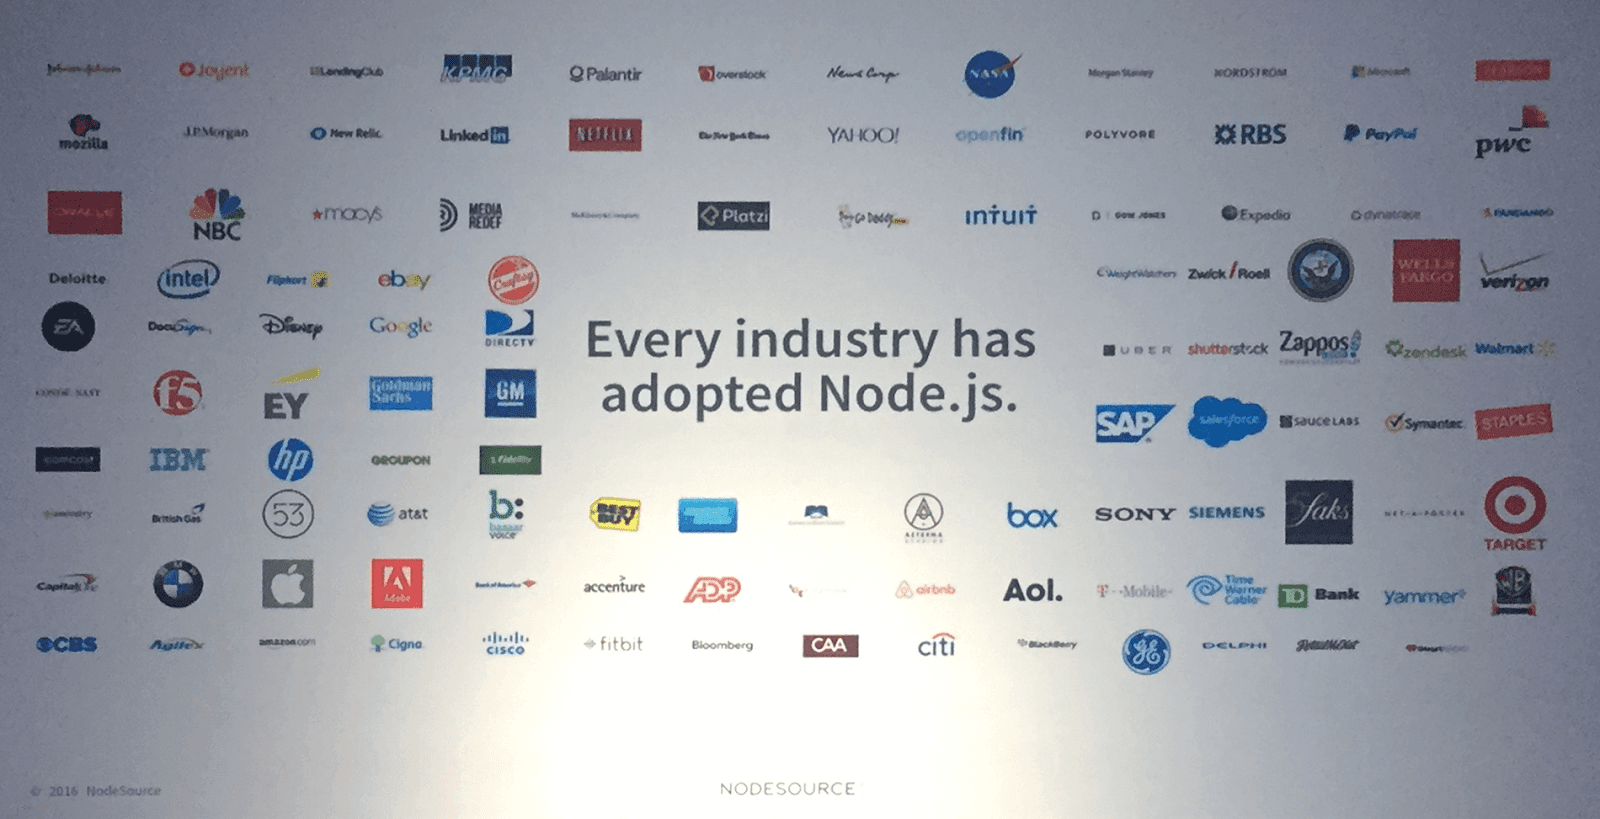 Every-industry-has-adopted-node-js.png